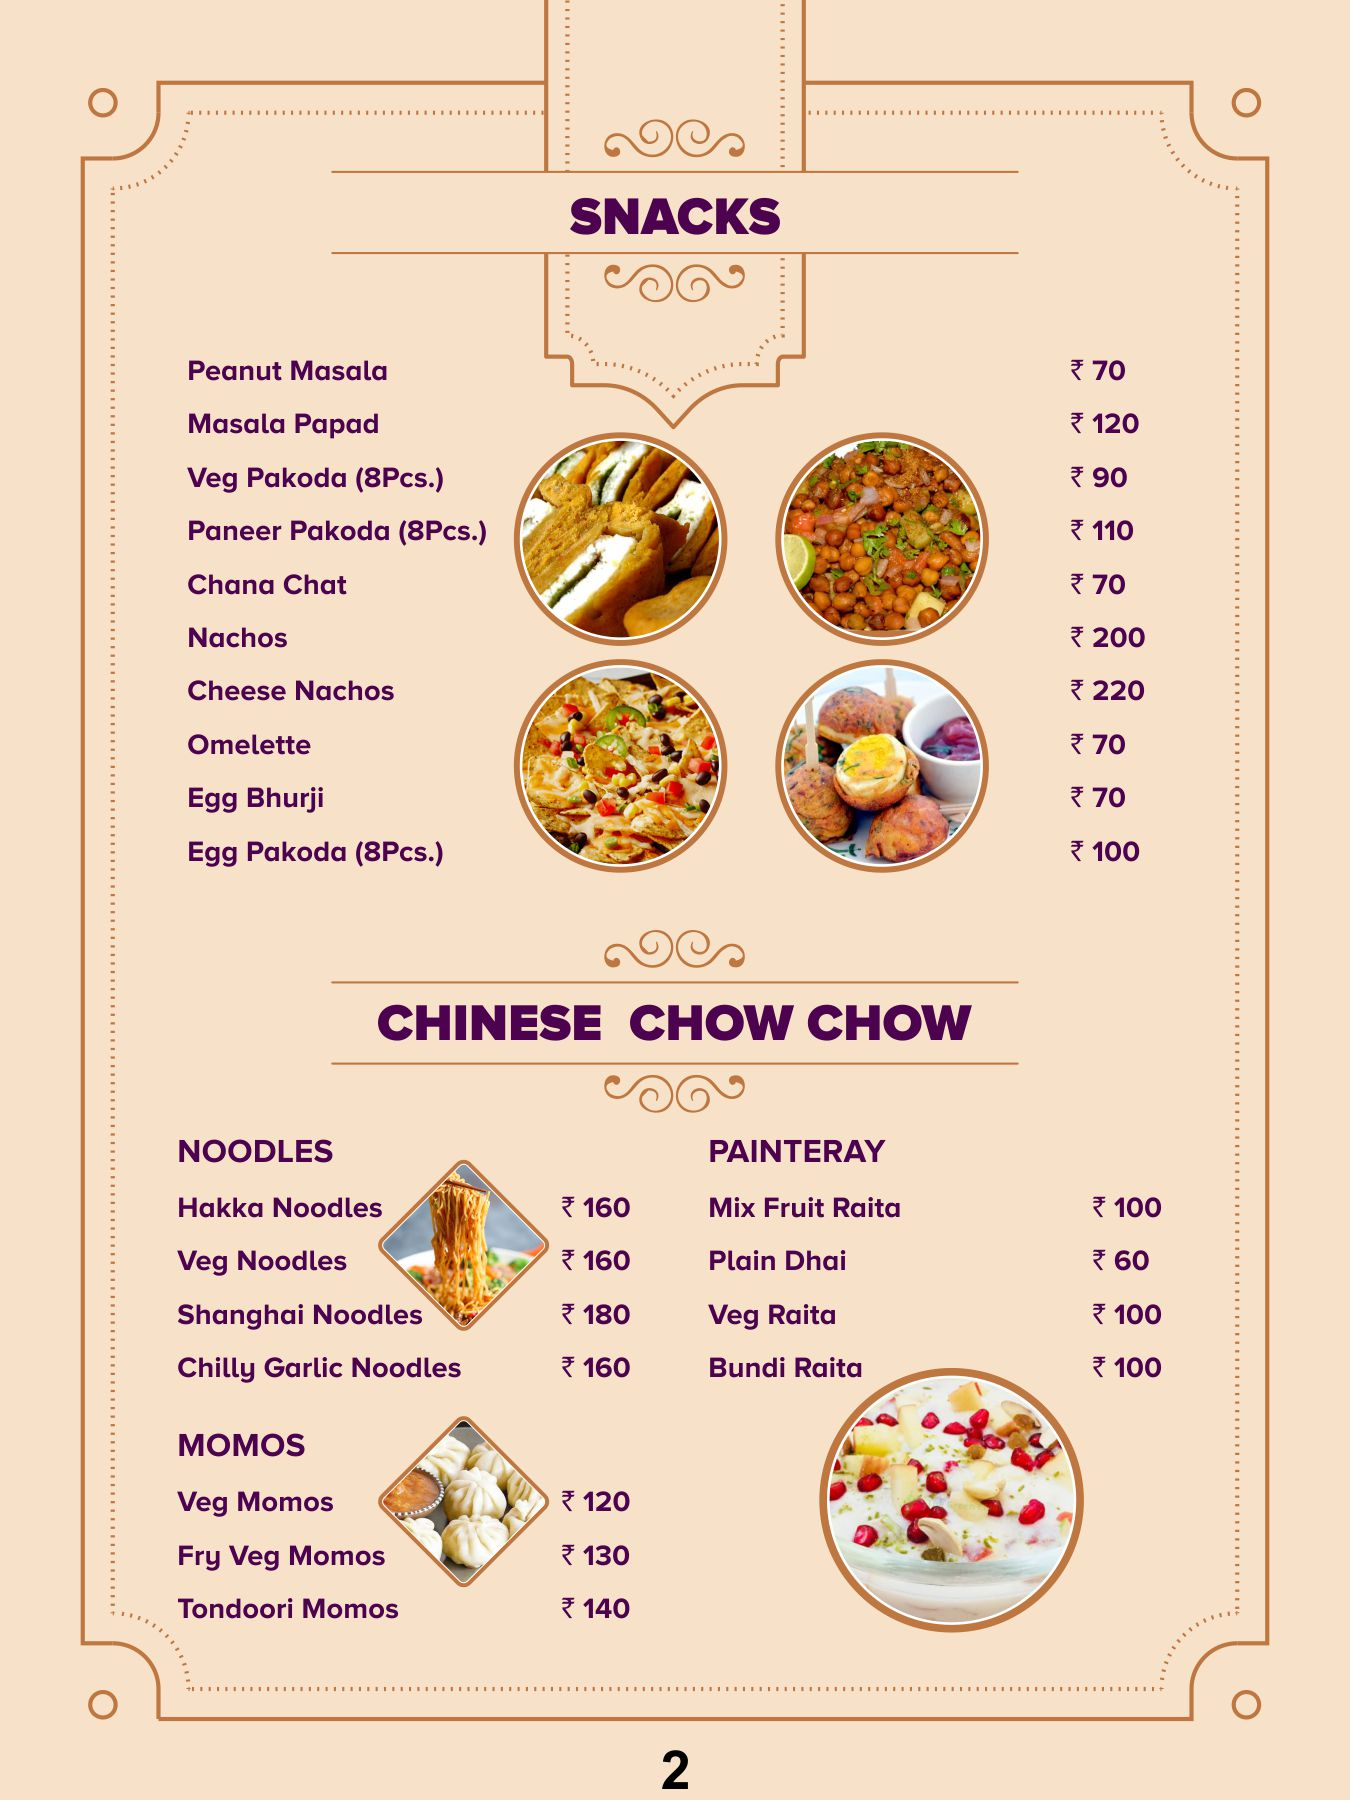 Chinese Chow Chow | We provides you best clean and tasty